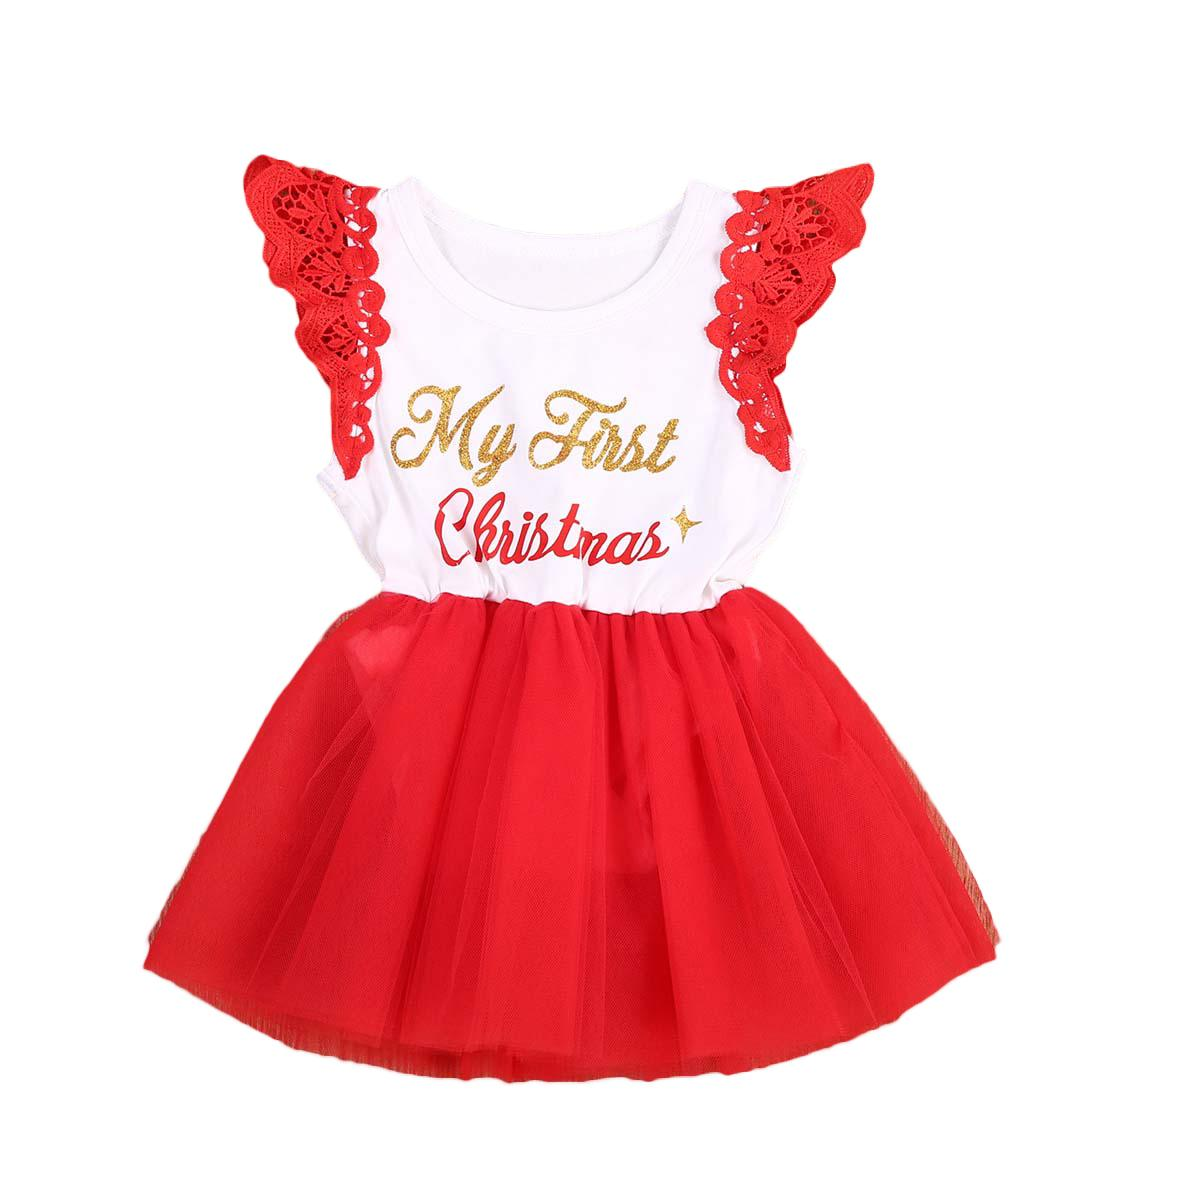 eb4860681f22 2019 Newborn Infant Kids Baby Girl Clothes Christmas Lace Ruffles Romper  Santa Claus Lace Tutu Jumpsuit Outfits Y18102907 From Gou07